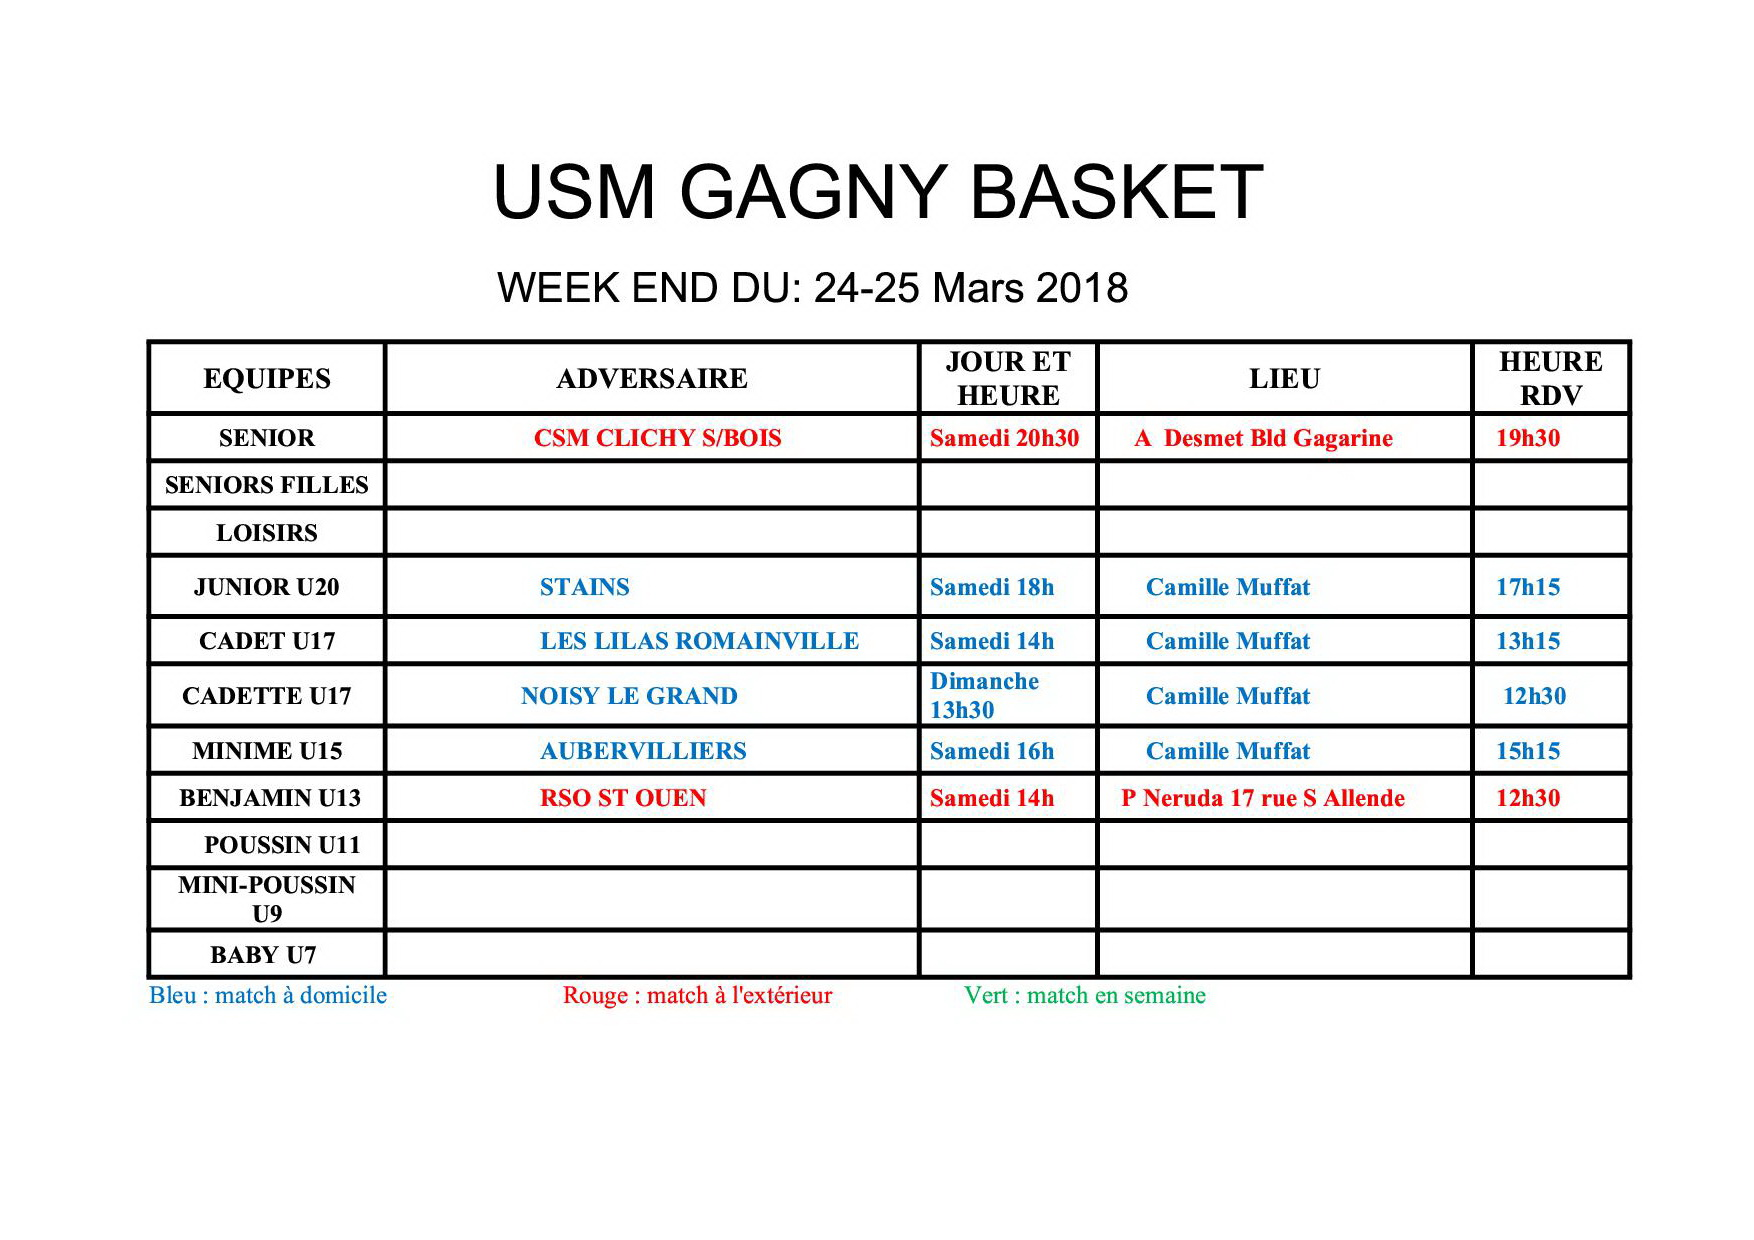 Usmg gagny planning week end 24 25 mars 2018